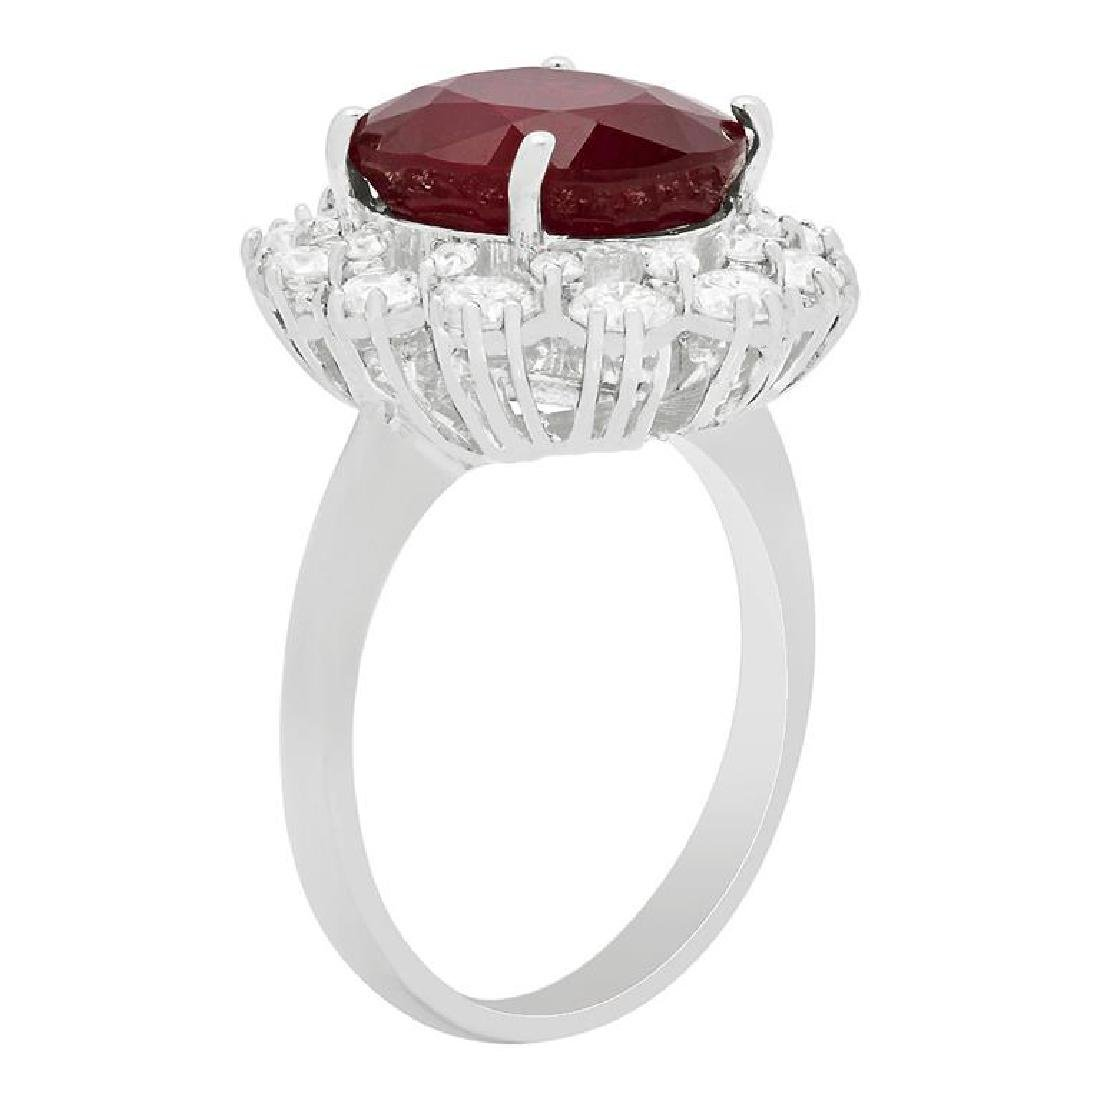 14k White Gold 6.15ct Ruby 1.44ct Diamond Ring - 2